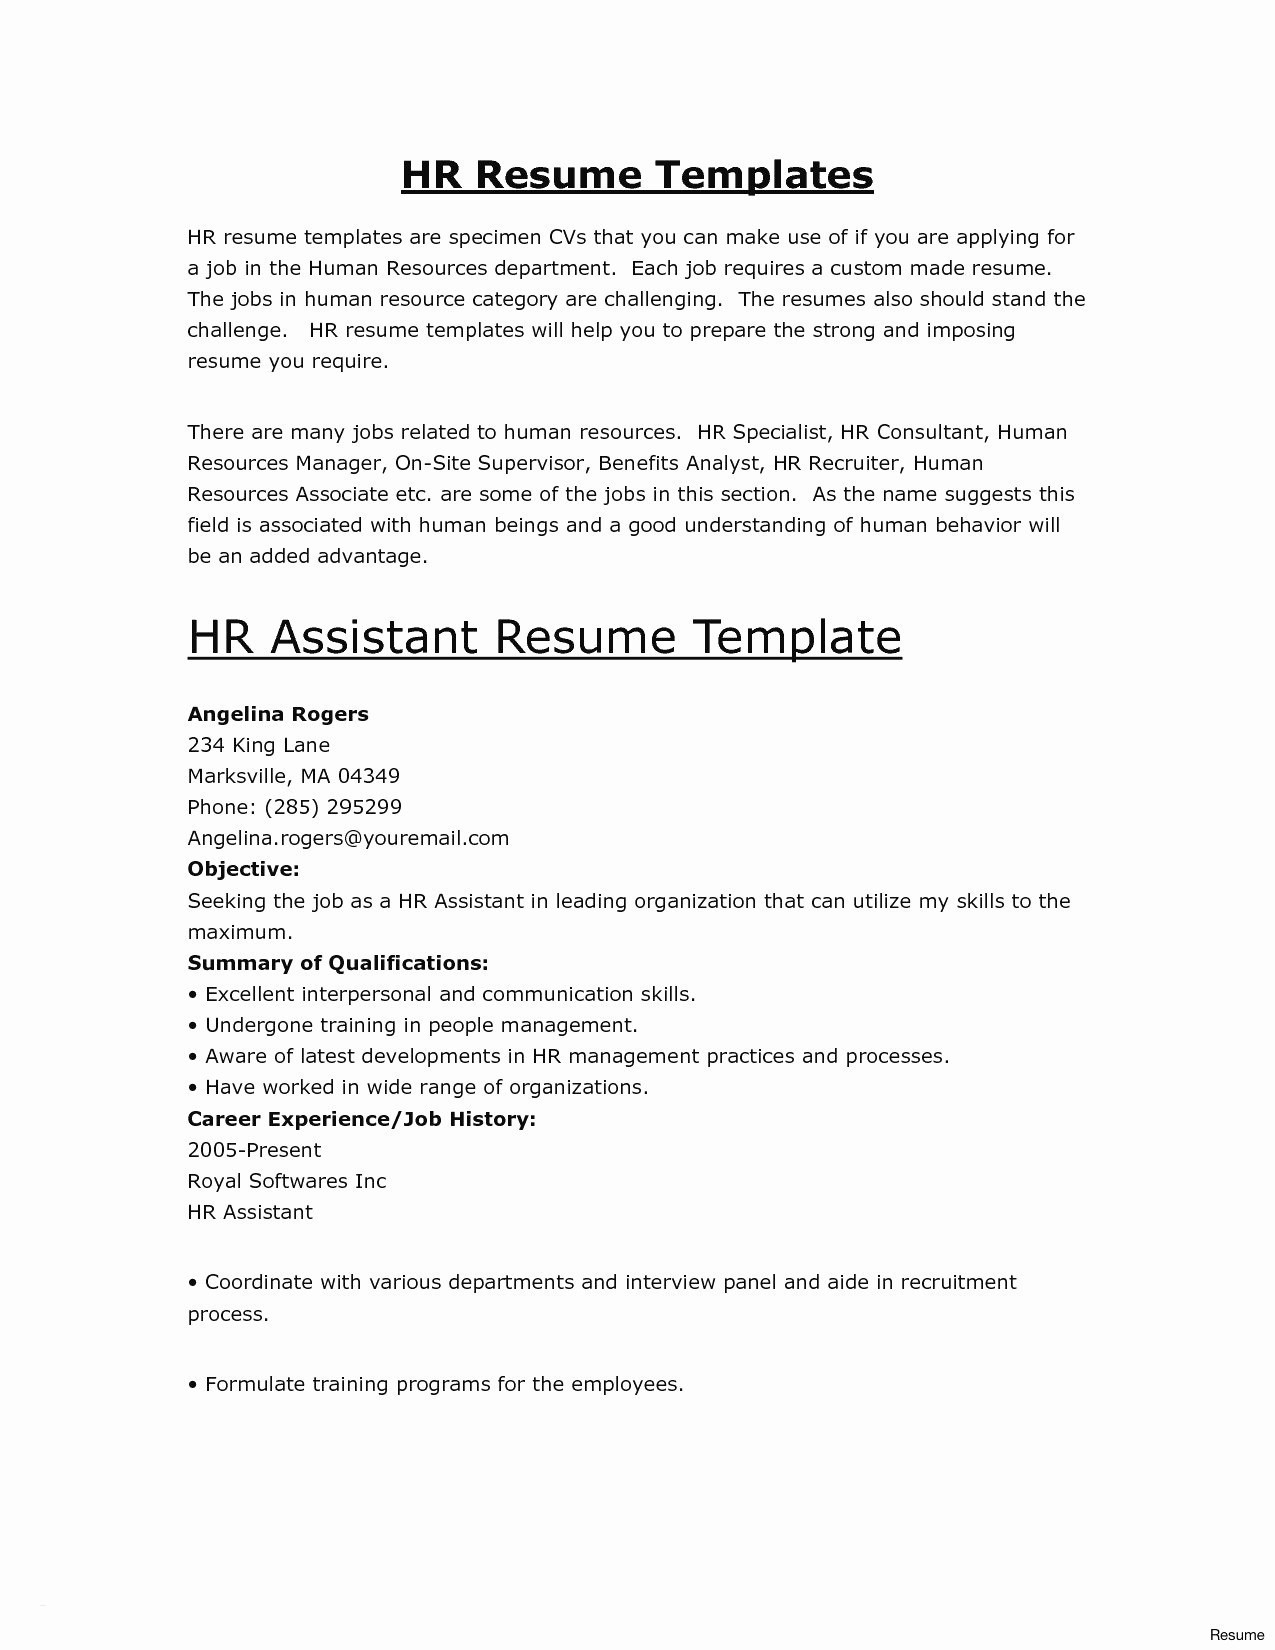 Picture Of A Resume - Resume Job Description Best Self Employed Resume New Luxury